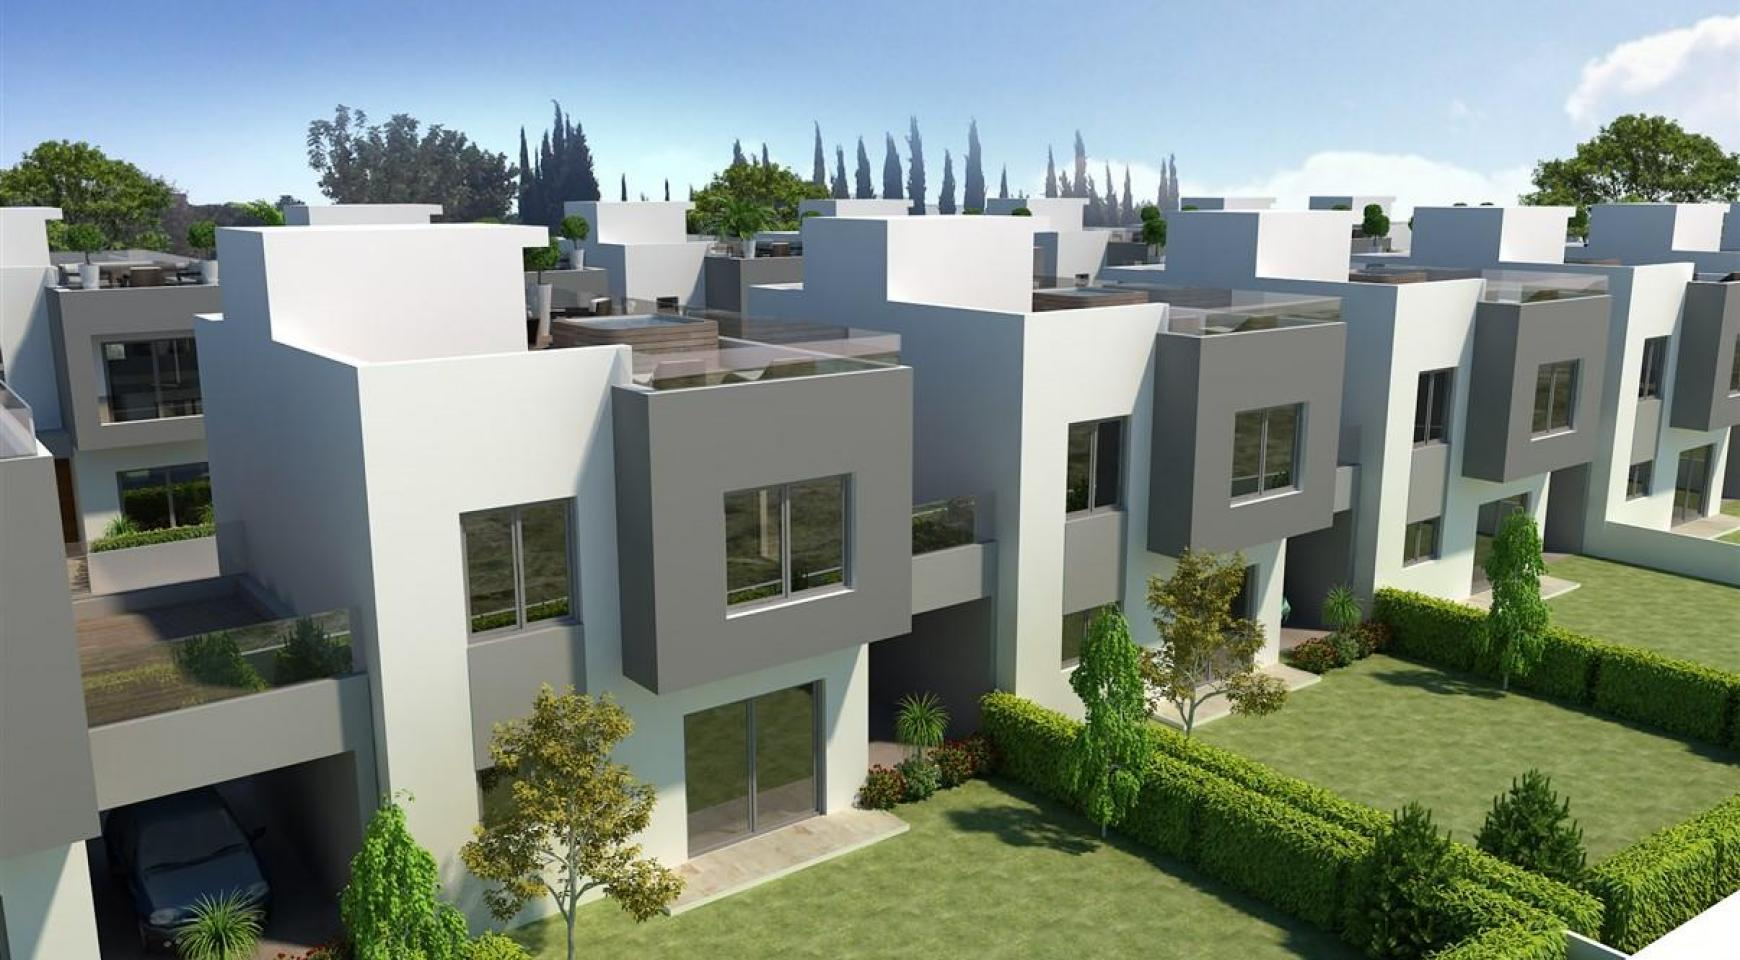 3 Bedroom Villa within a New Project - 29